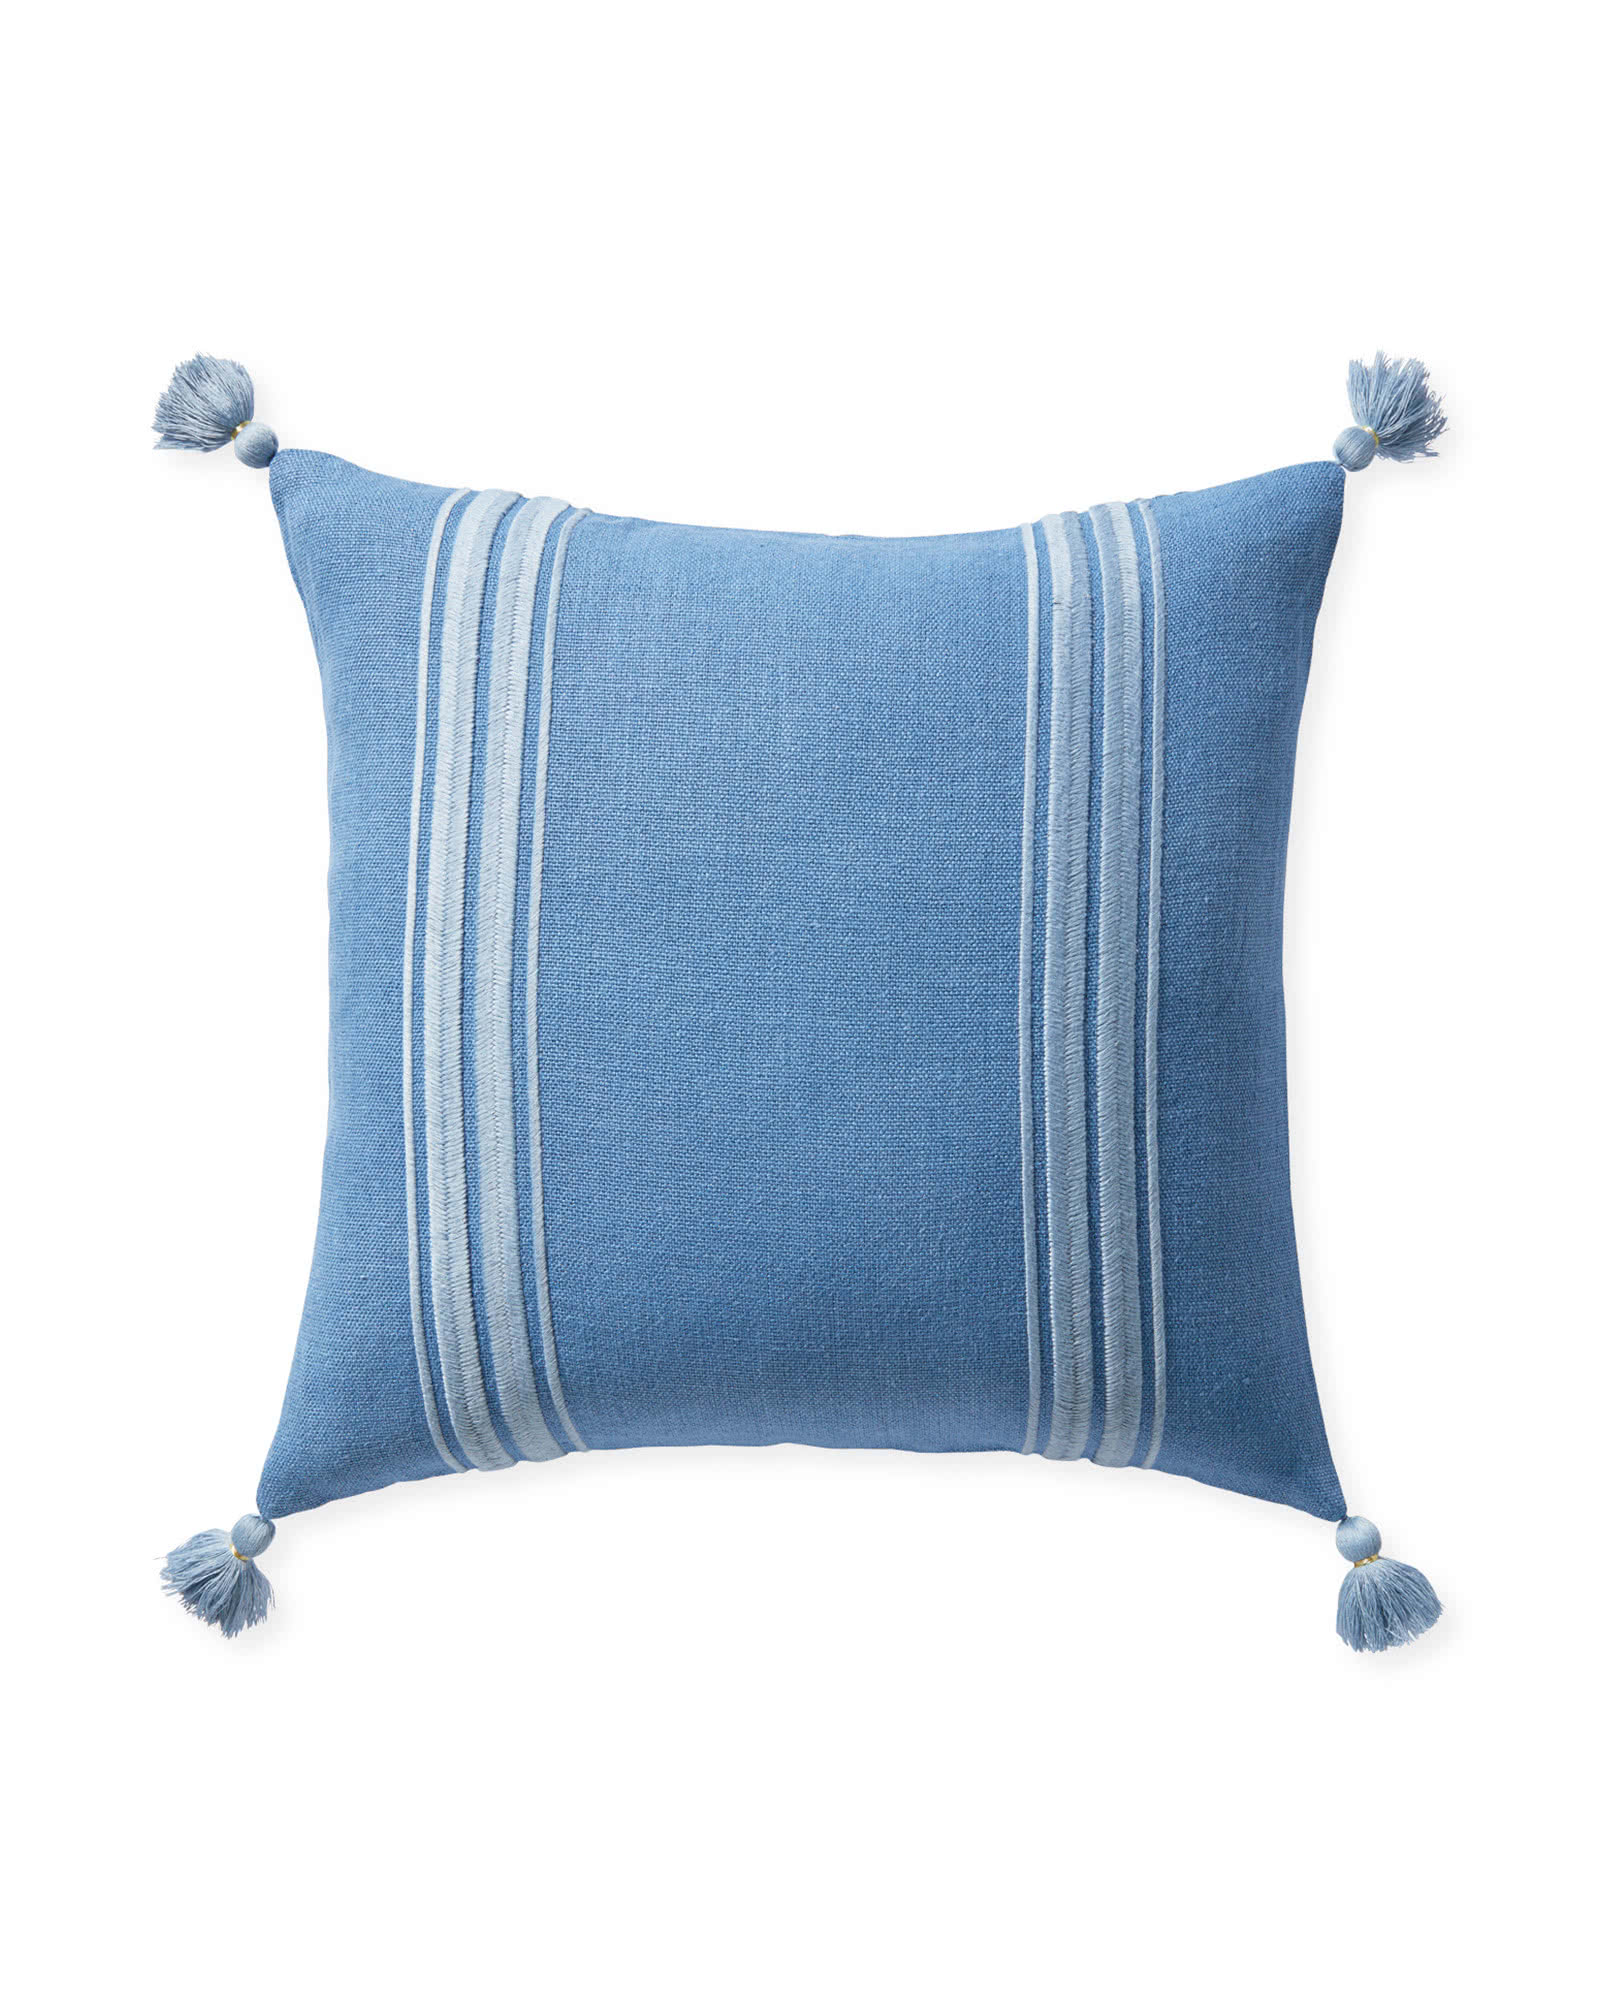 Addie Stripe Tassel Pillow Cover, Harbor